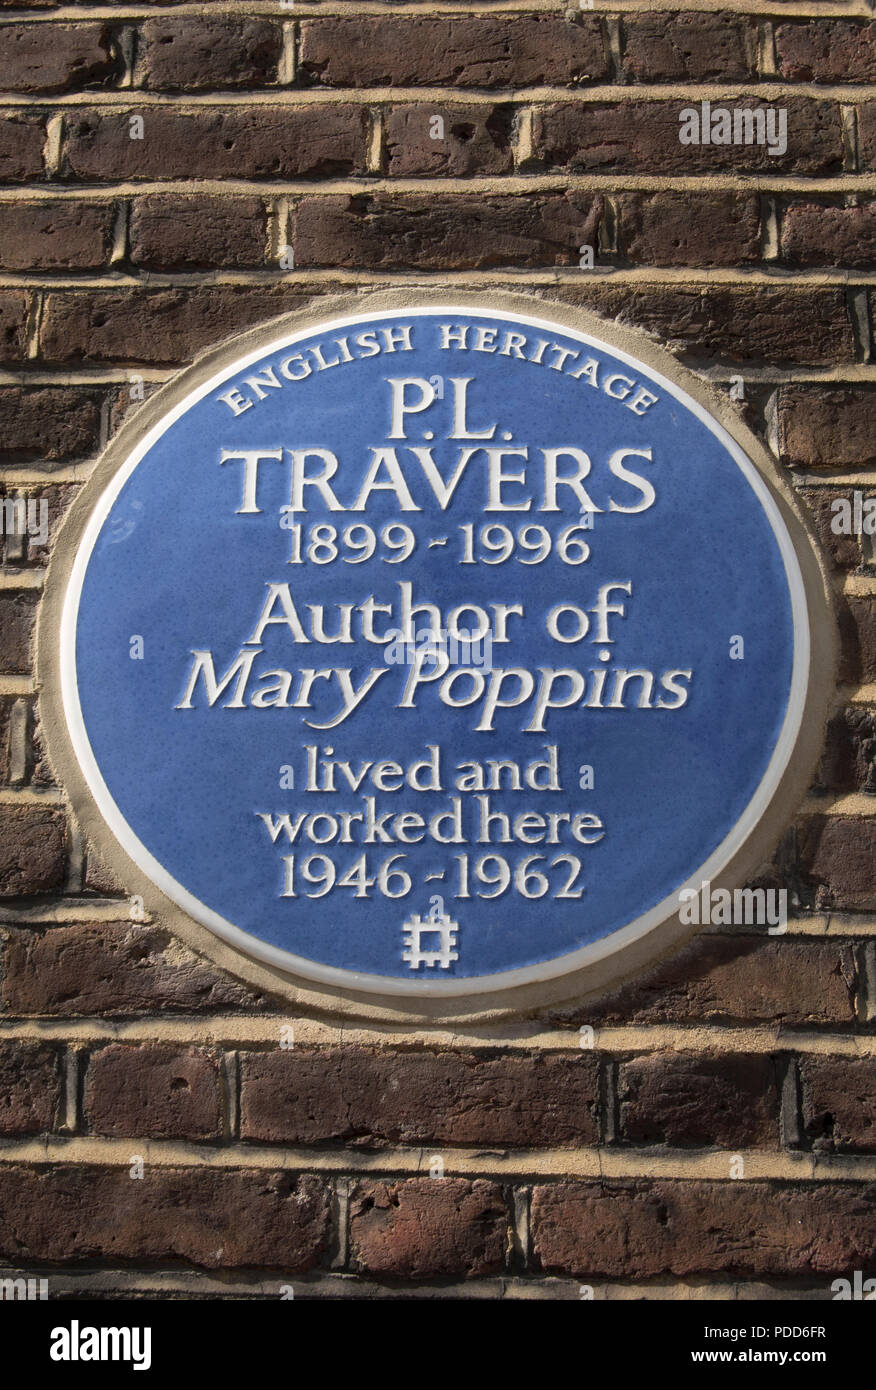 english heritage blue plaque marking a home of pl travers, author of mary poppins, smith street, chelsea, london, england - Stock Image